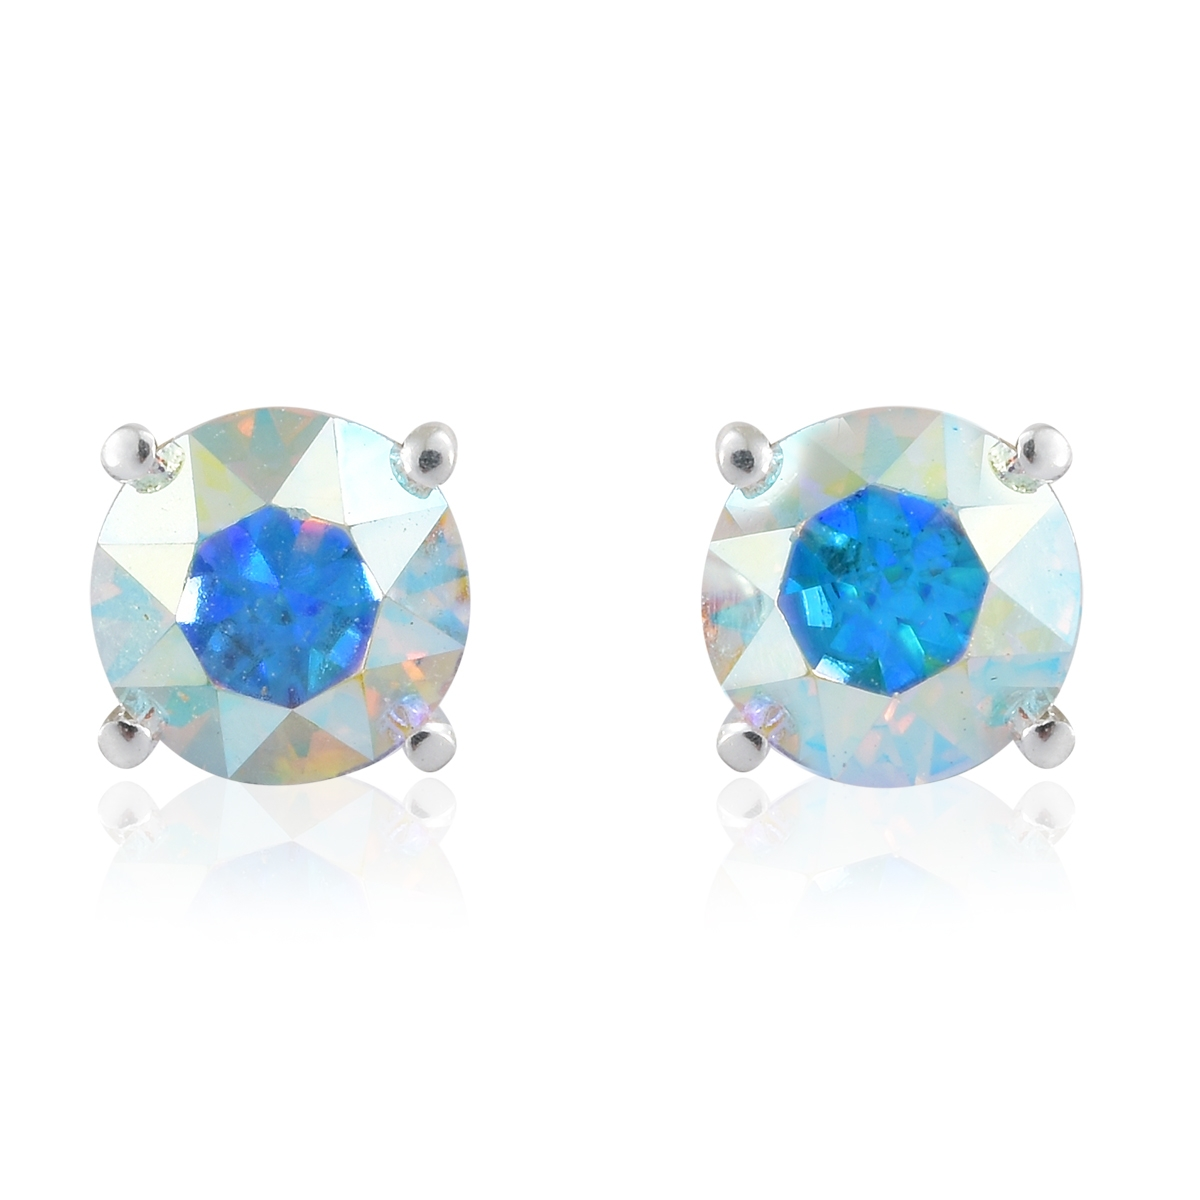 Set Of 2 Sterling Silver Stud Earrings Made With Swarovski White And Aurora Borealis Crystal